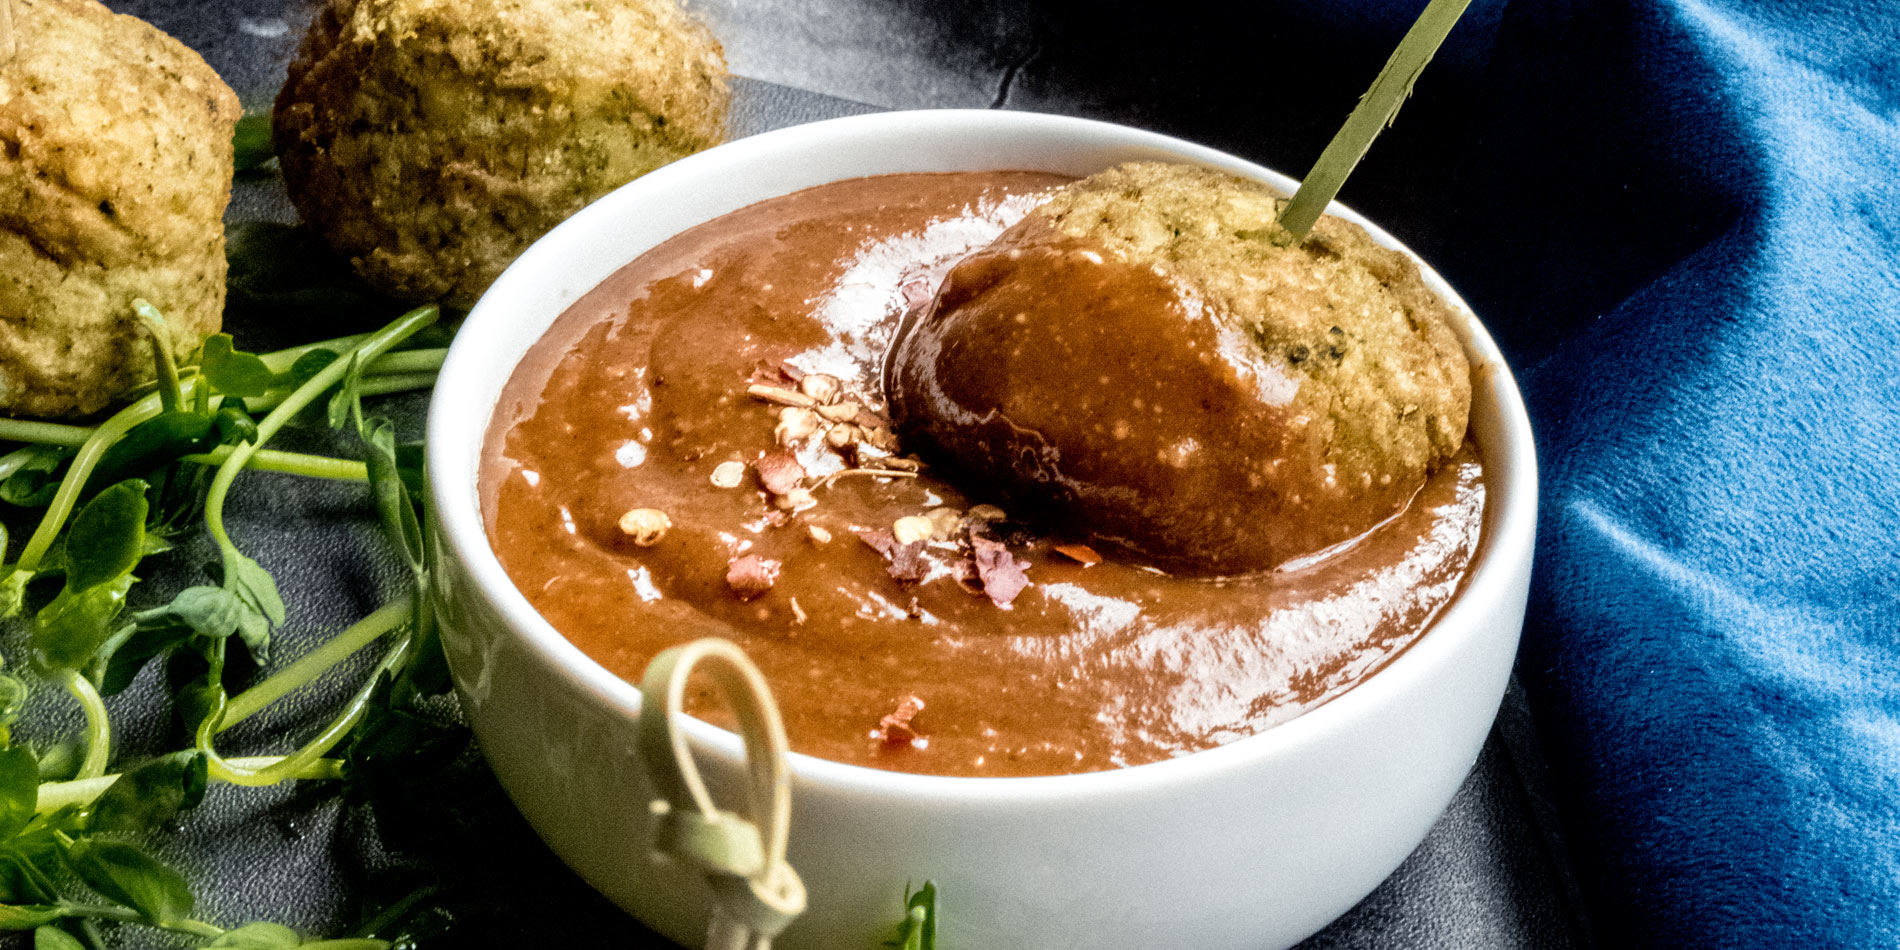 Balsamic Almond Butter Dipping Sauce dipped with meatballs in a small round white bowl against a blue fabric background